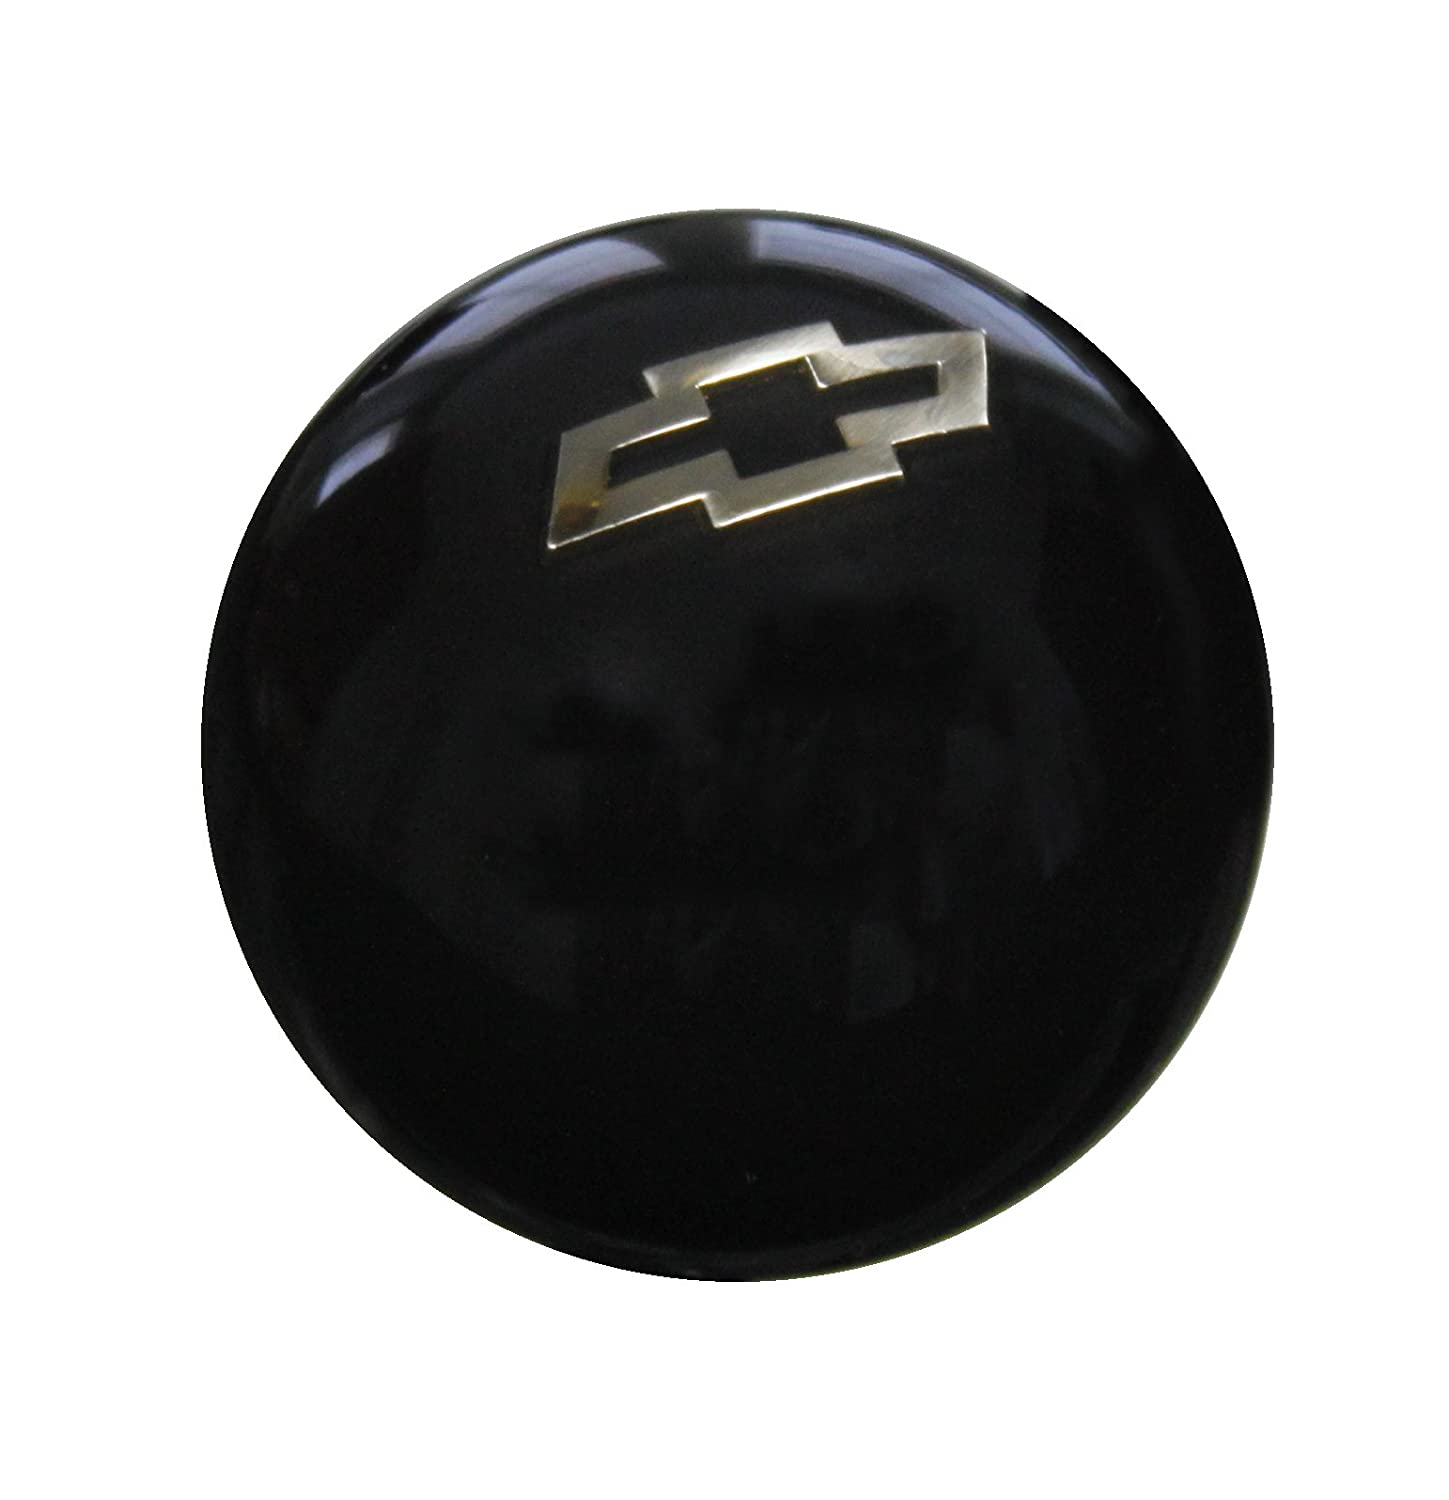 Speed Dawg GM Licensed Series Black Shift Knob with Gold Chevy Bowtie Emblem SK501CBTG-GM